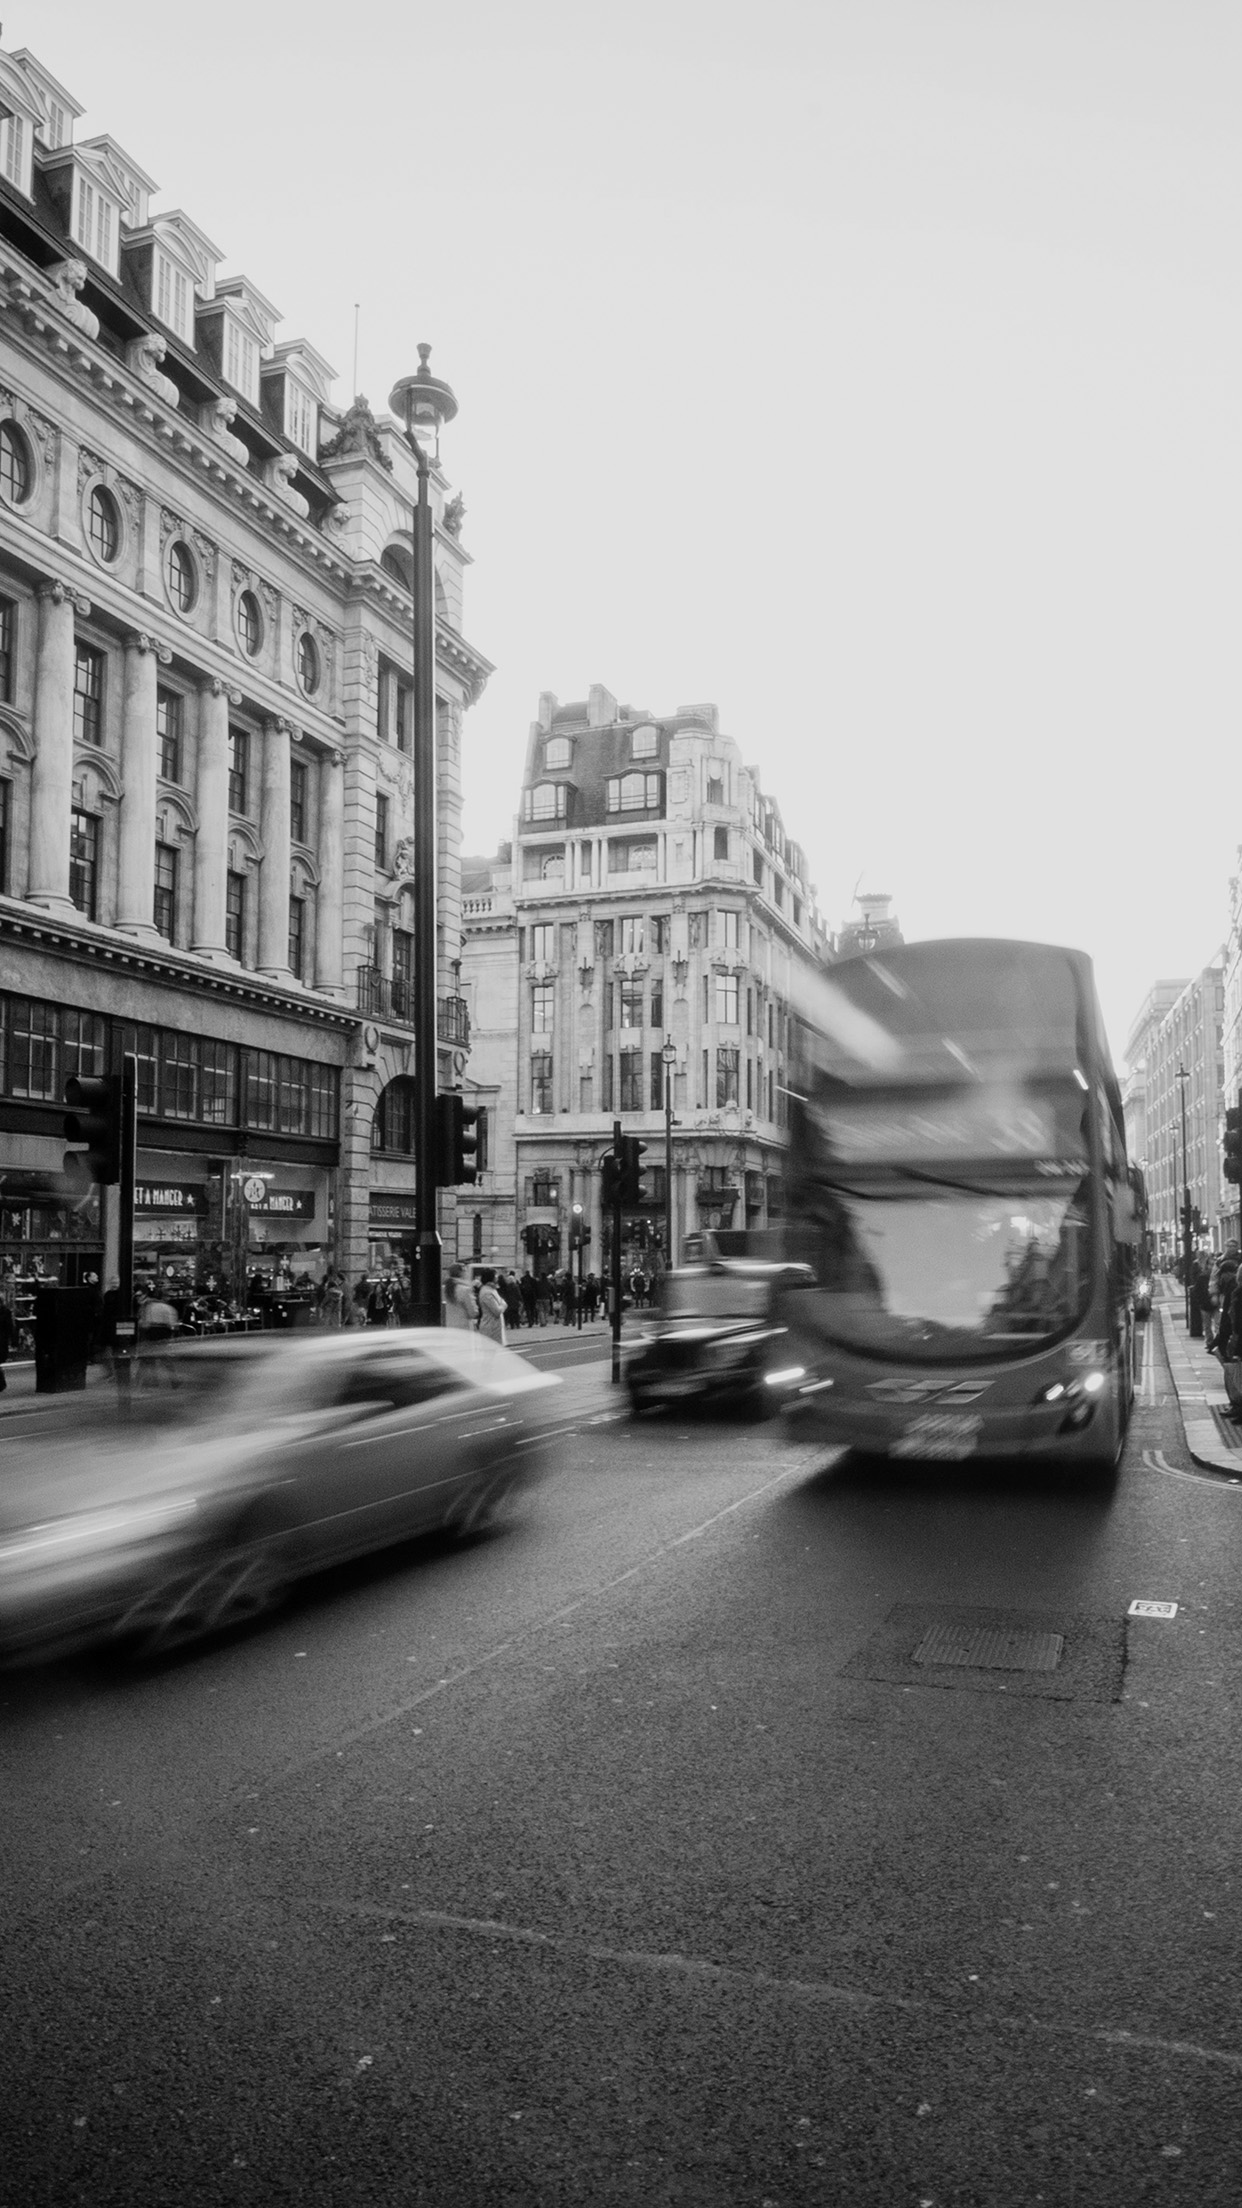 Black And White London Wallpaper Iphone 3194621 Hd Wallpaper Backgrounds Download